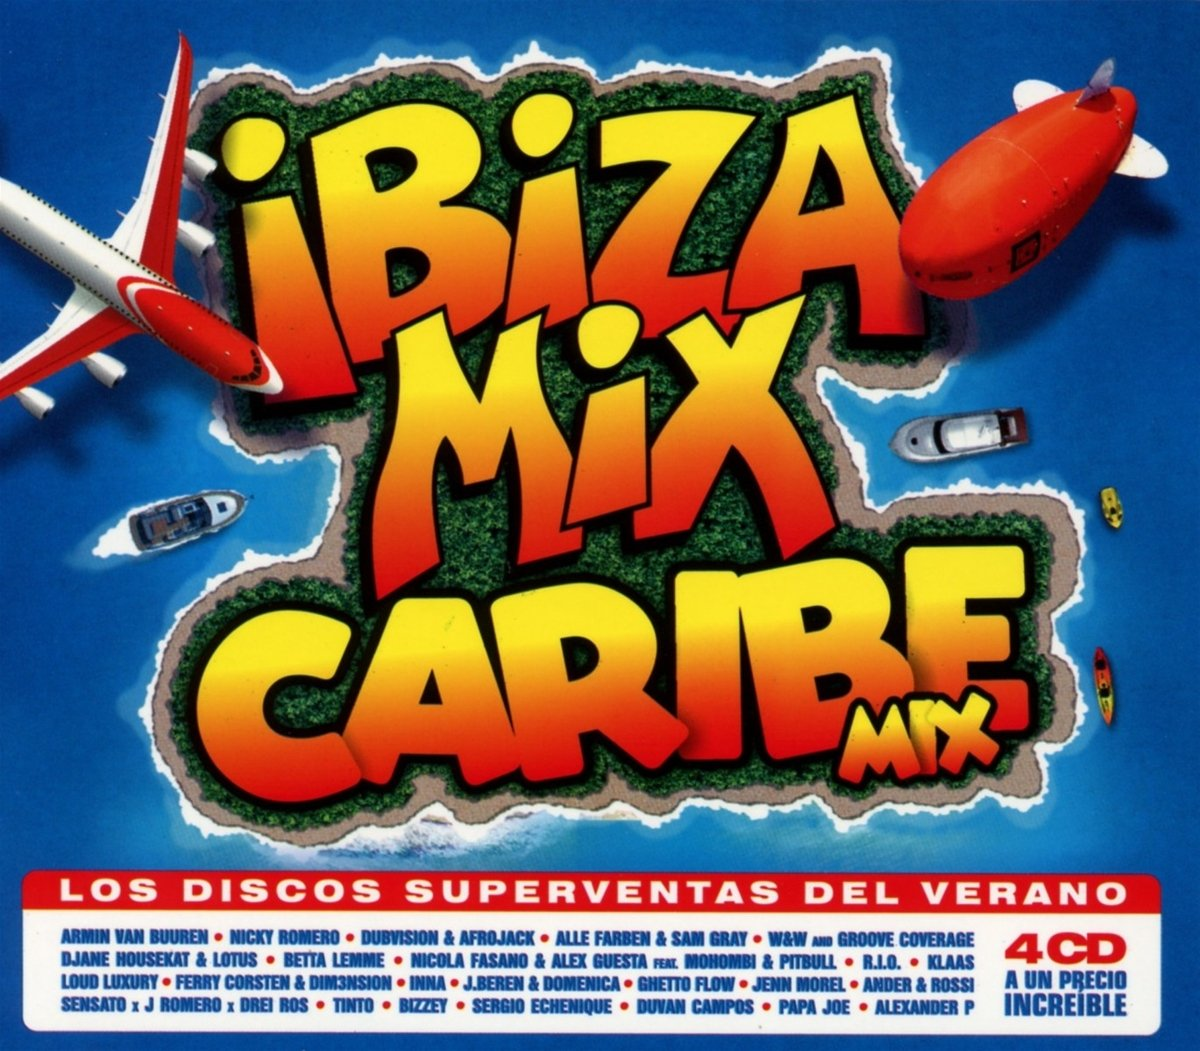 Disco Ibiza Mix + Caribe Mix 2018